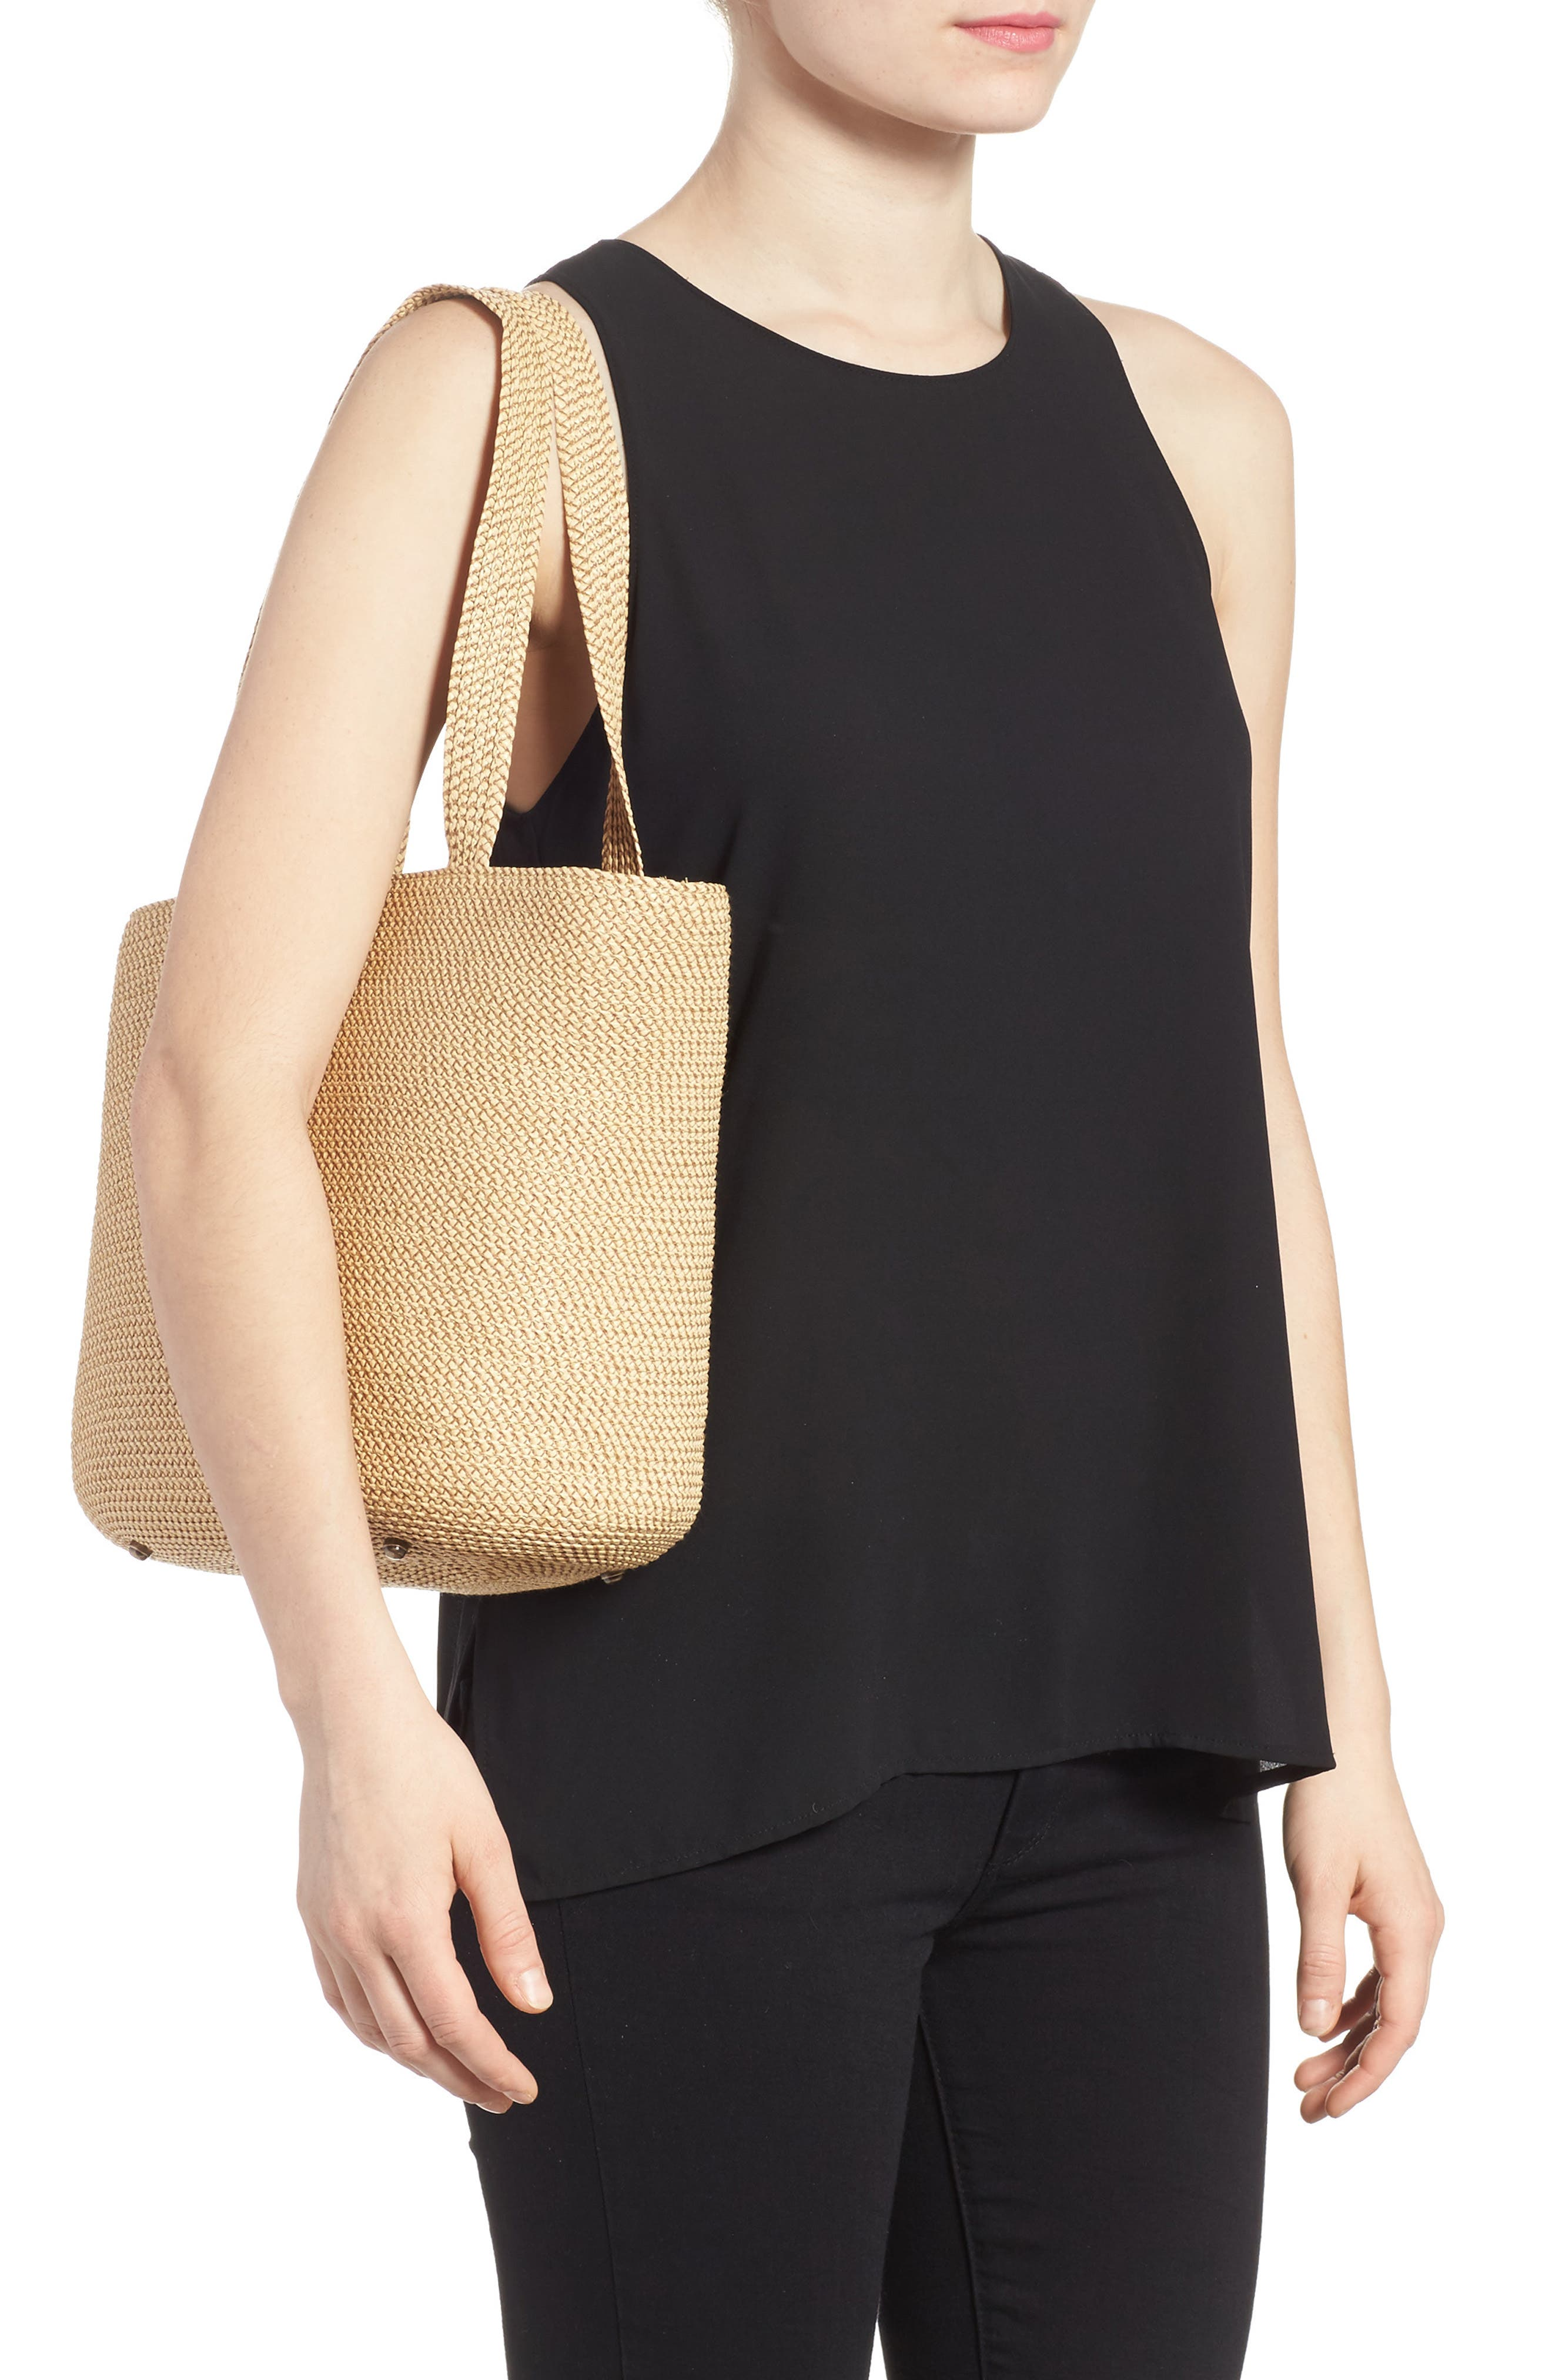 Squishee<sup>®</sup> Tote,                             Alternate thumbnail 2, color,                             PEANUT